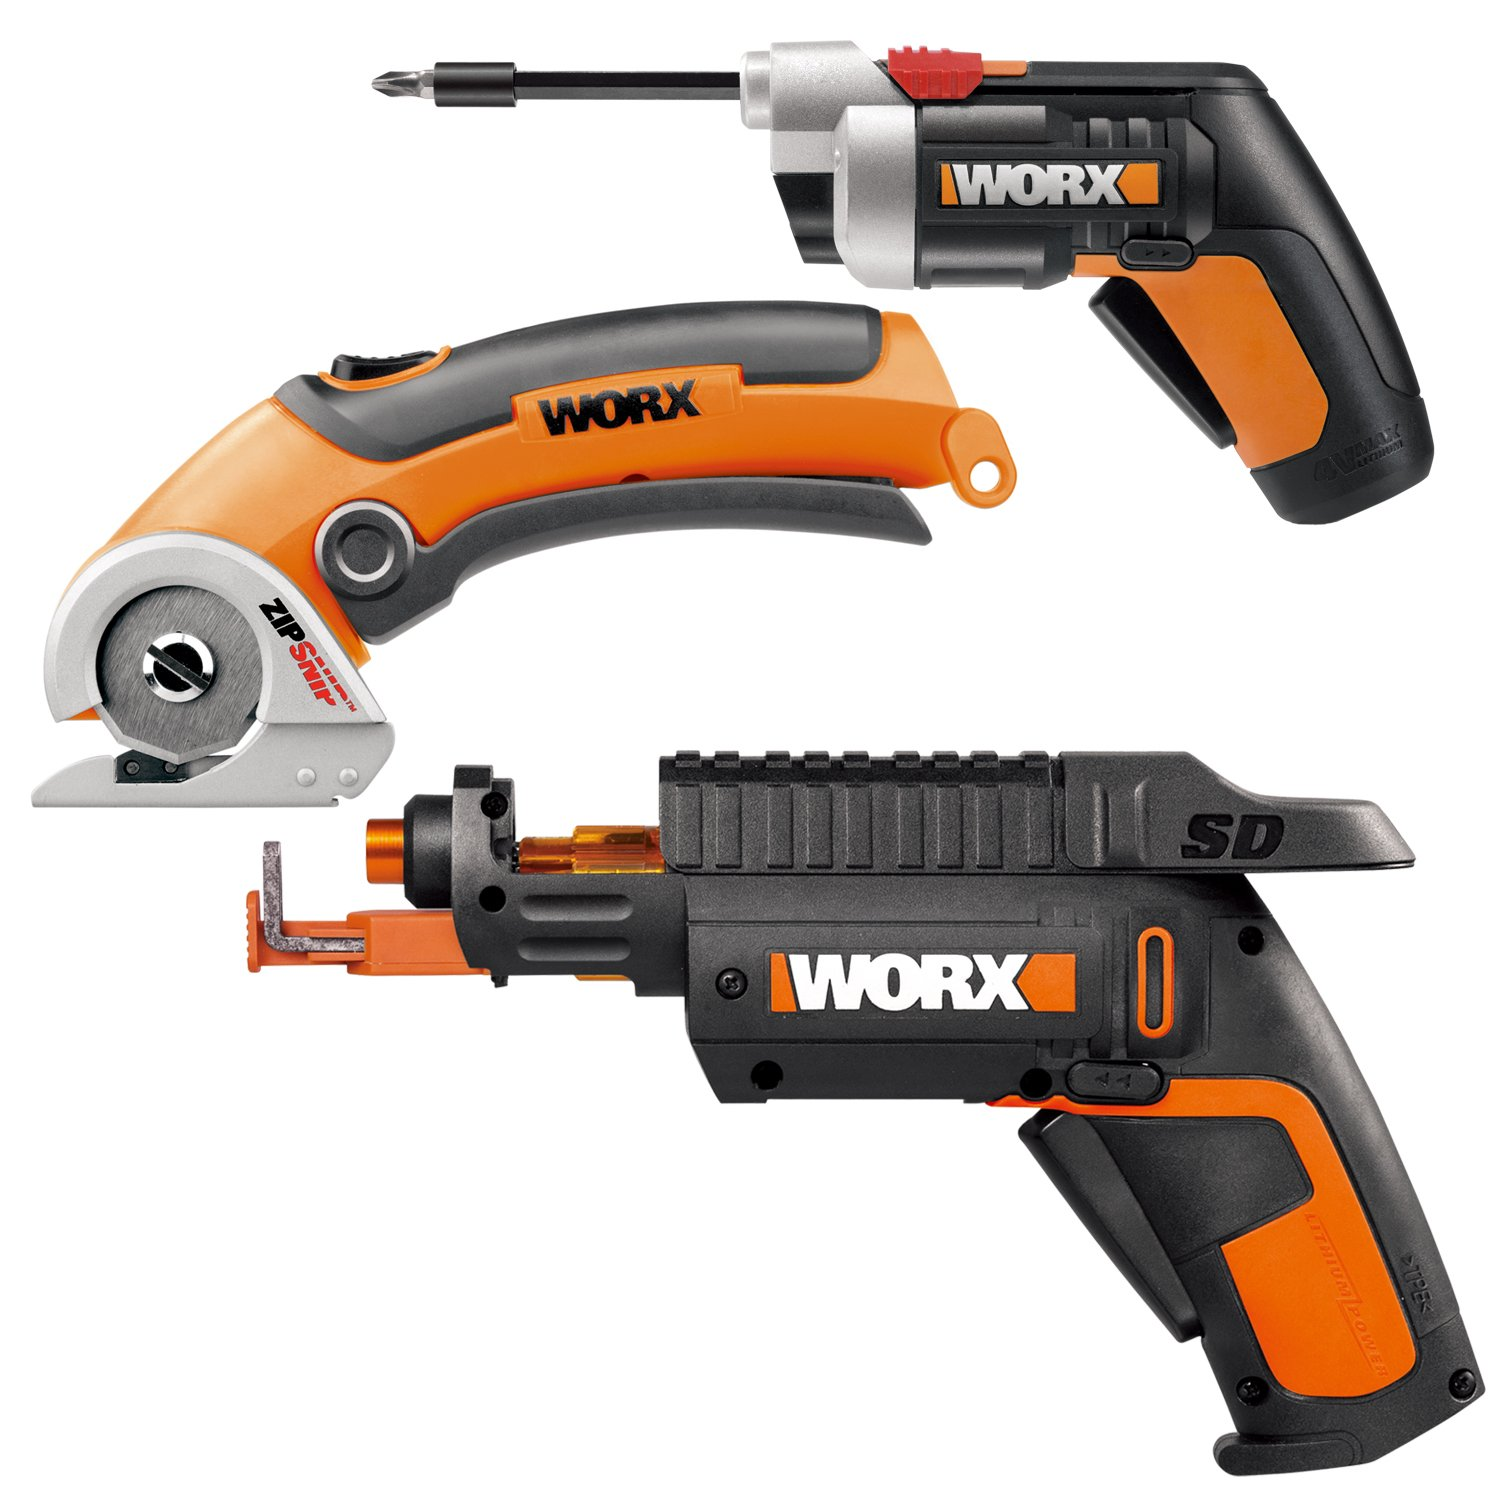 WORX WO7037 Combo Kit - WX255L SD Driver, WX081L Zip Snip, and WX252L Extended Reach Screw Driver